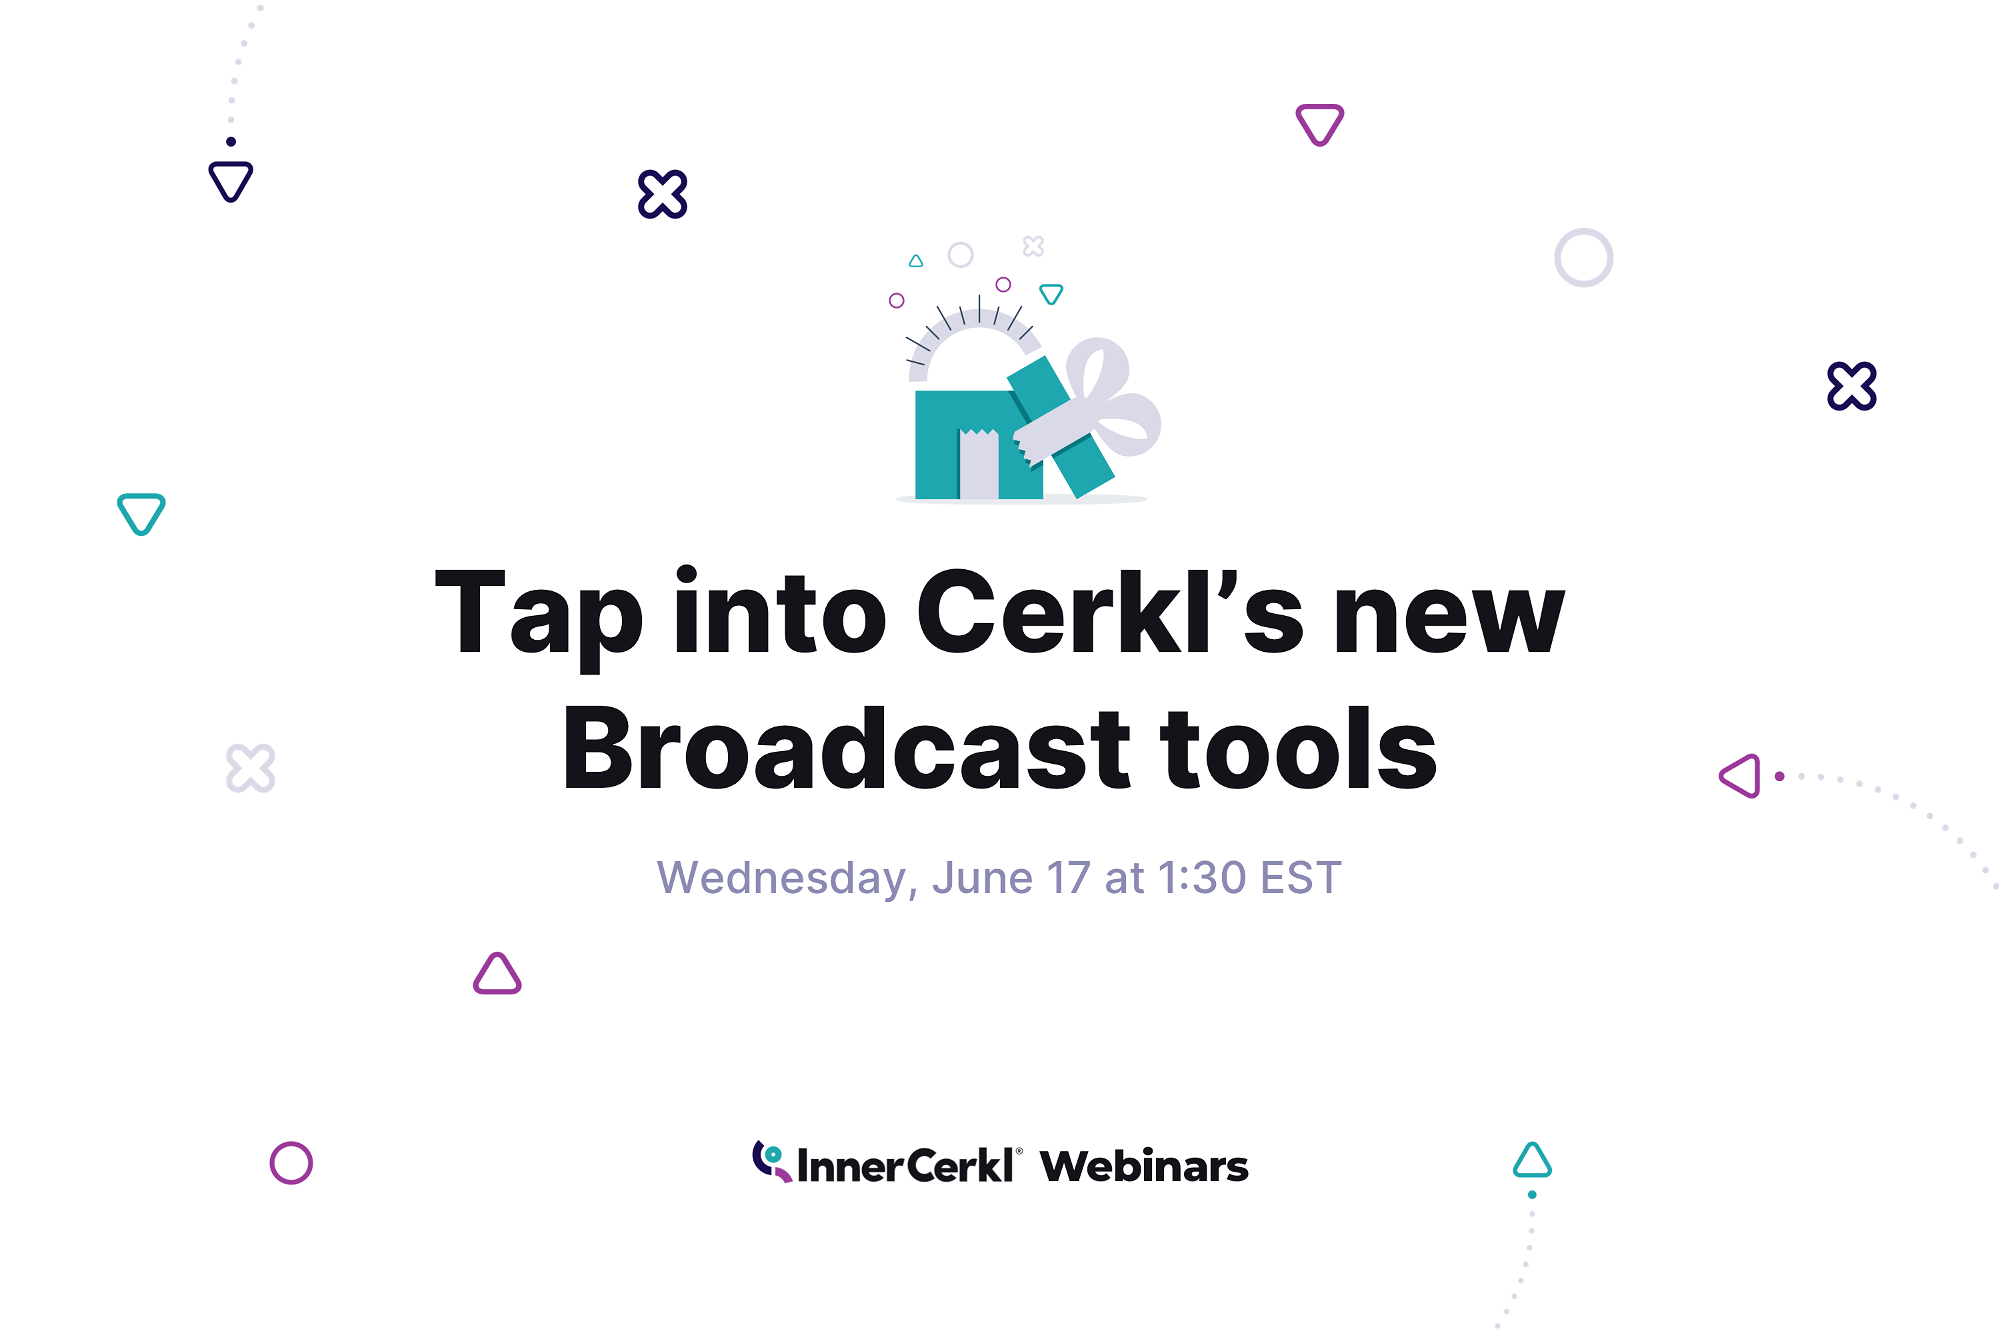 Tap into Cerkl's new Broadcast tools graphic